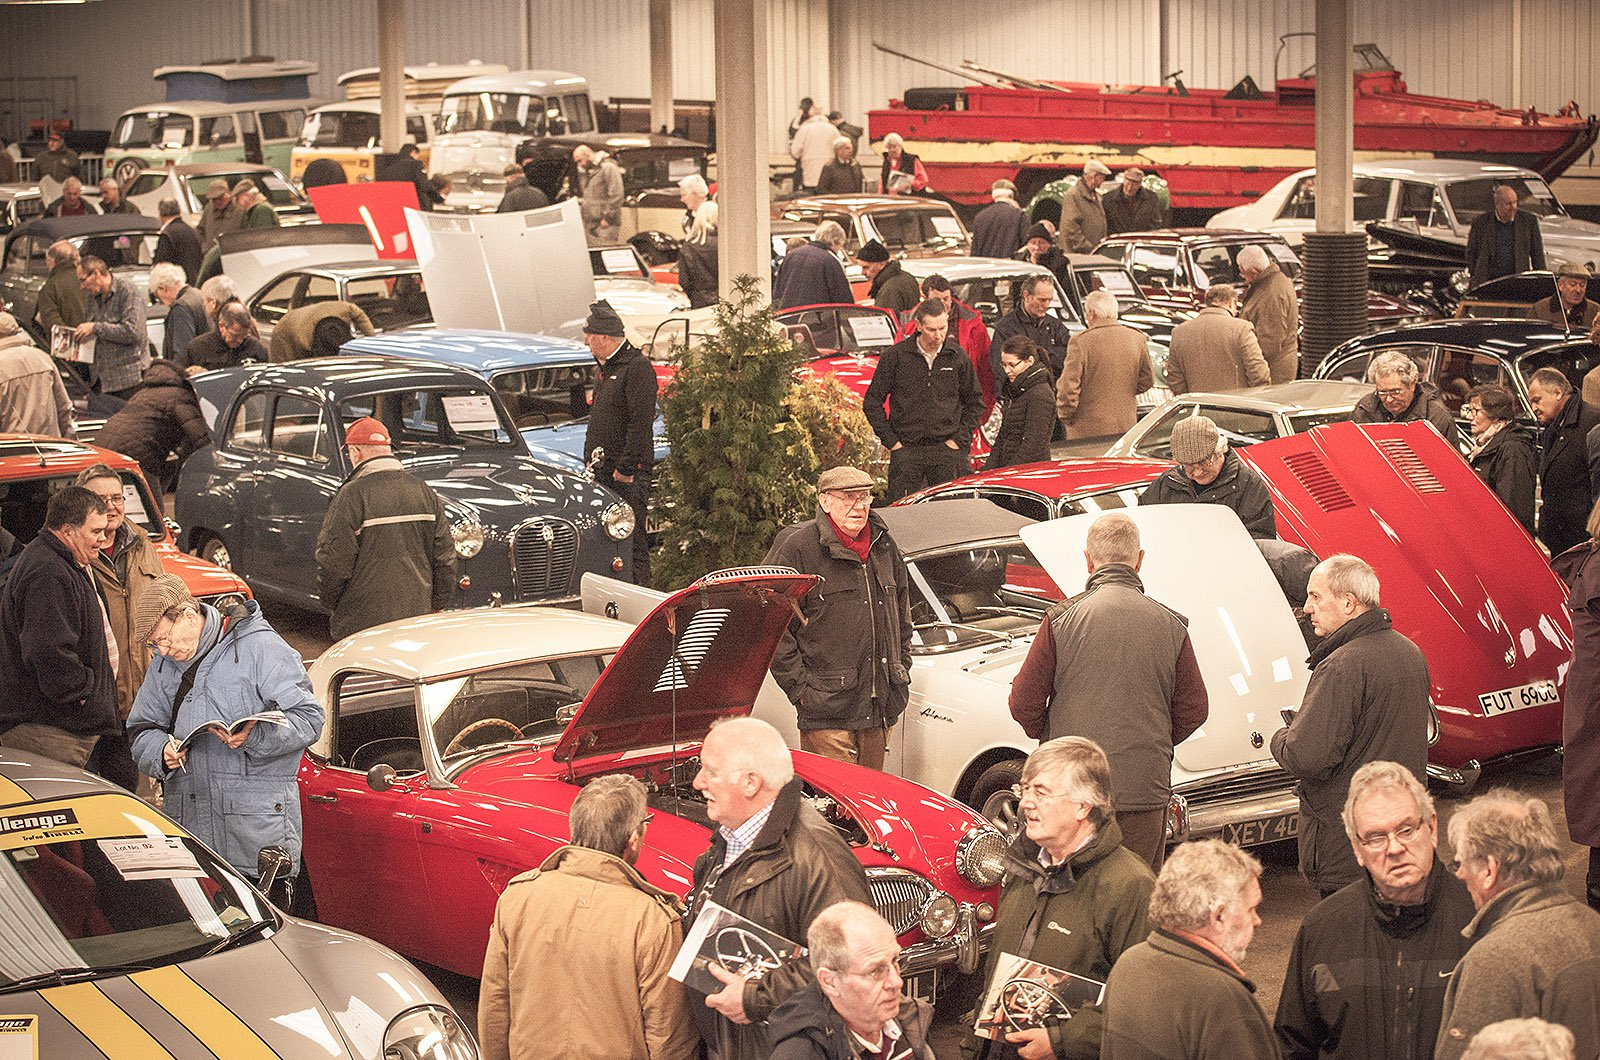 Potential bidders inspecting classic cars in warehouse before auction commences